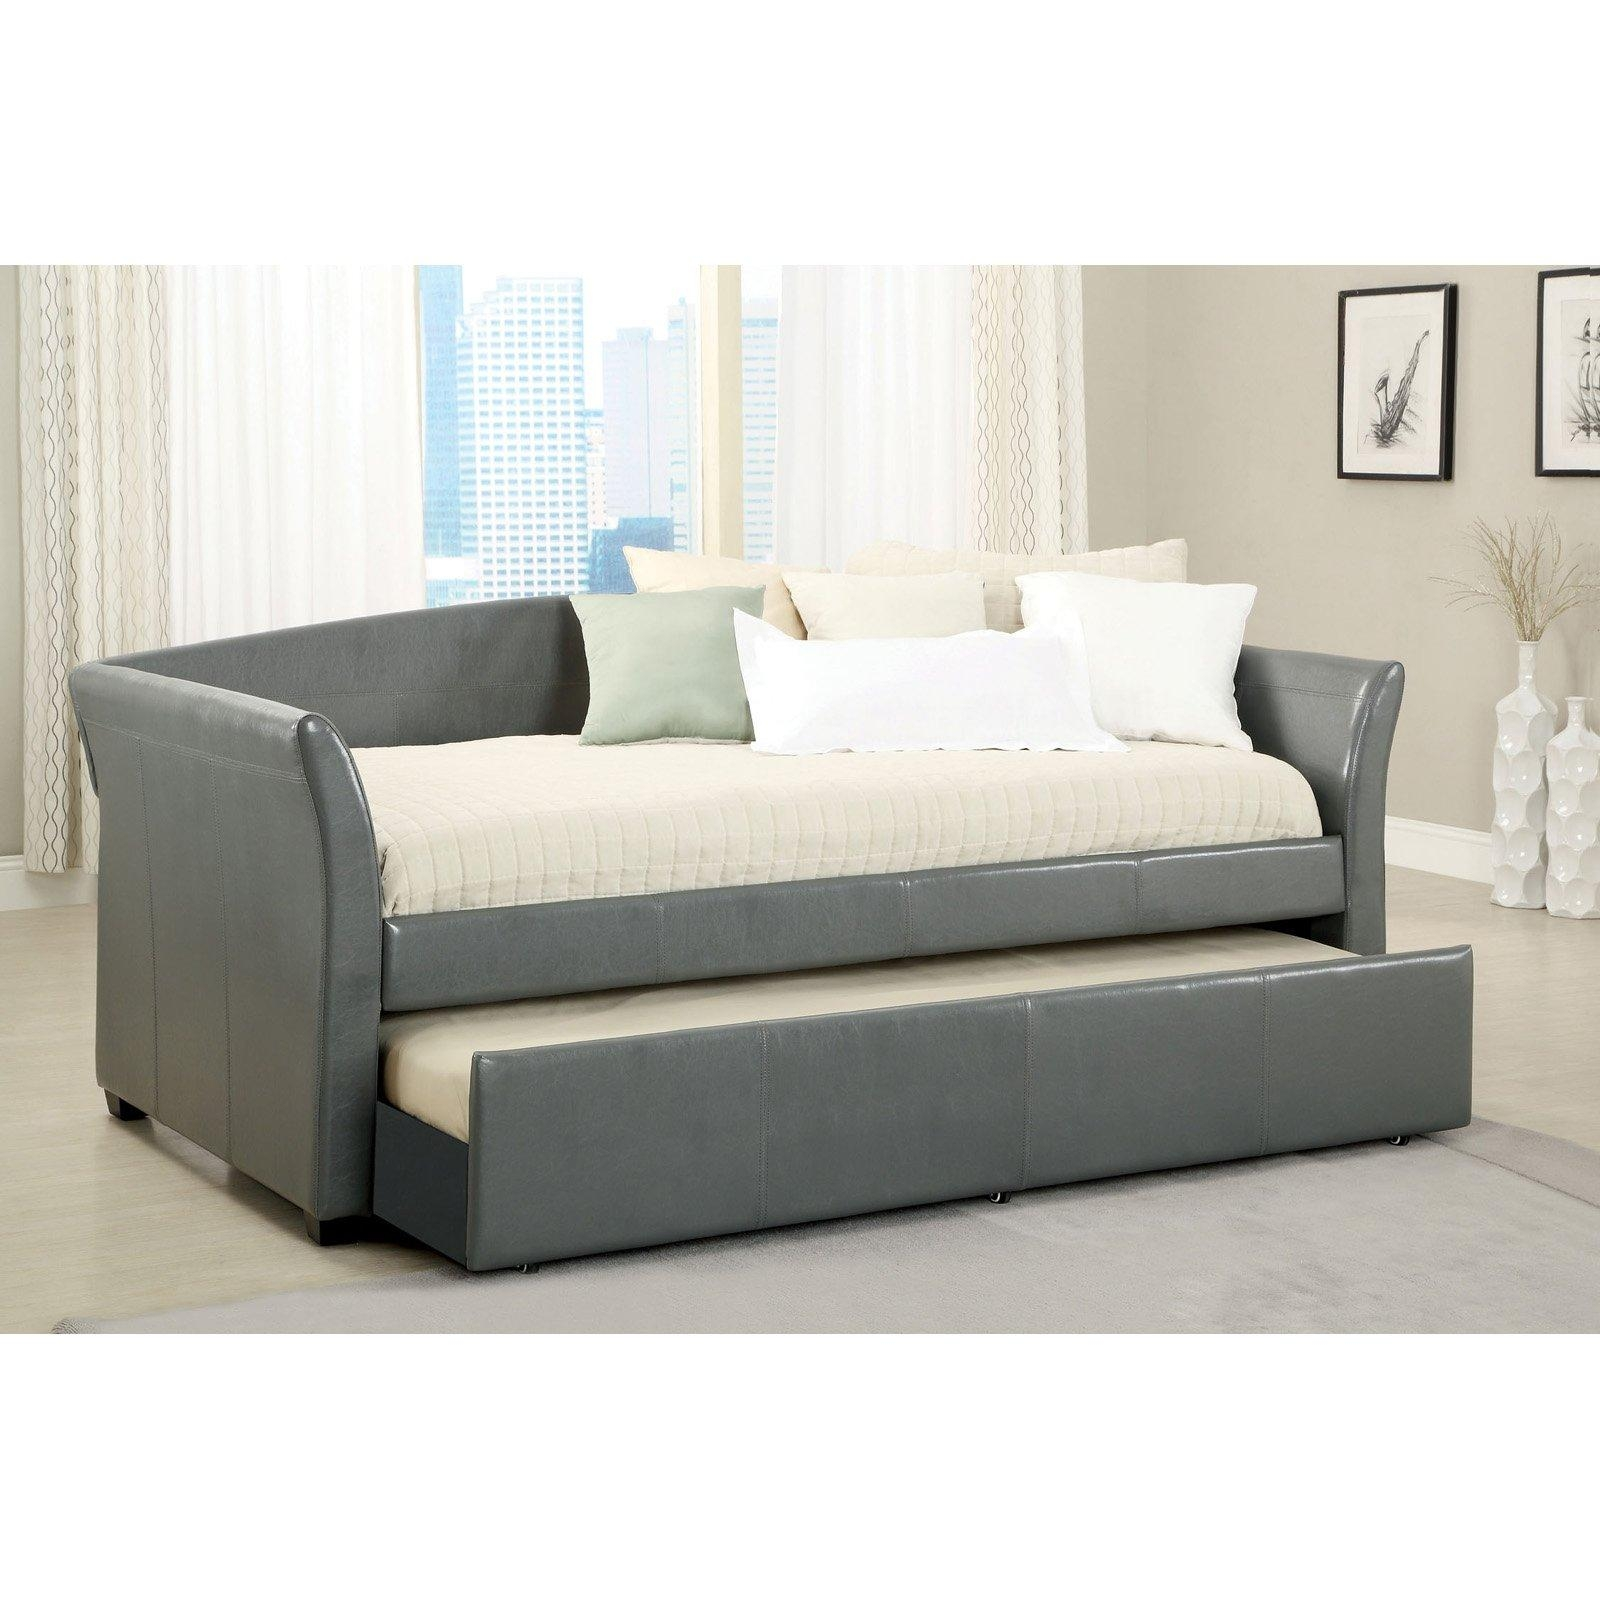 Sofa Daybed With Trundle | Best Sofas Ideas – Sofascouch With Regard To Sofas With Trundle (Image 6 of 20)